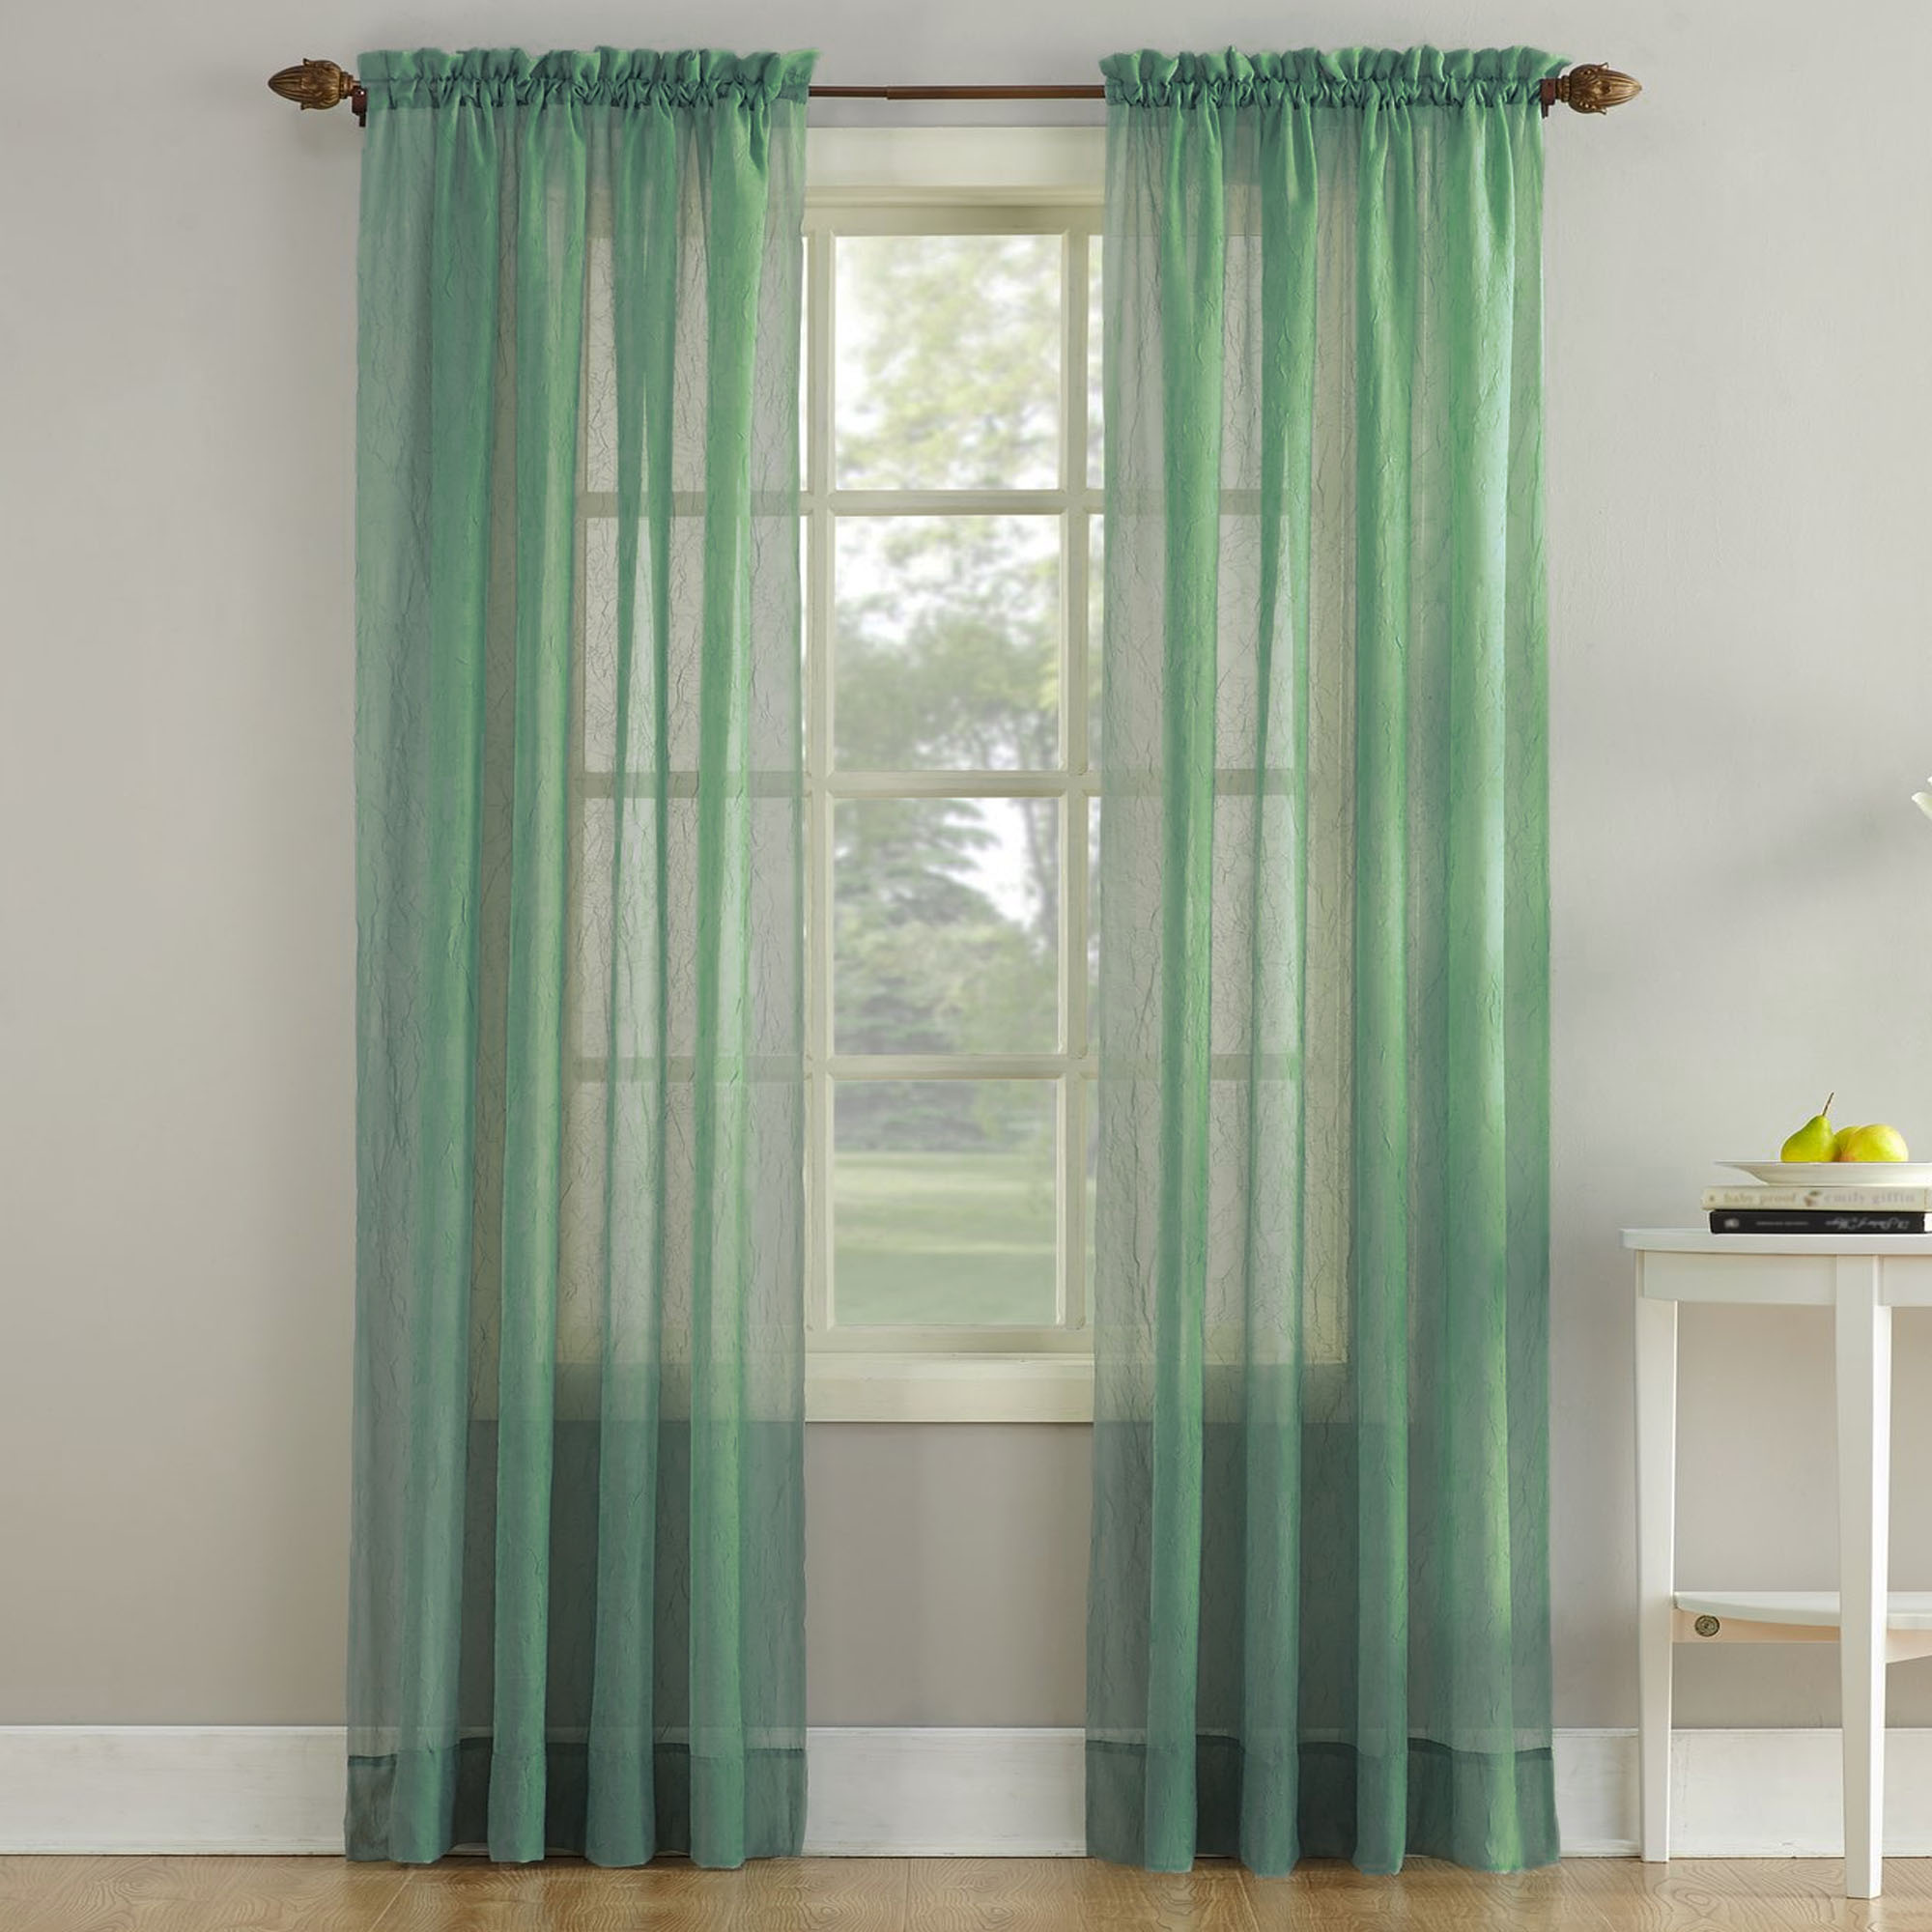 Erica Crushed Sheer Voile Curtain Panel In Sage Altmeyer